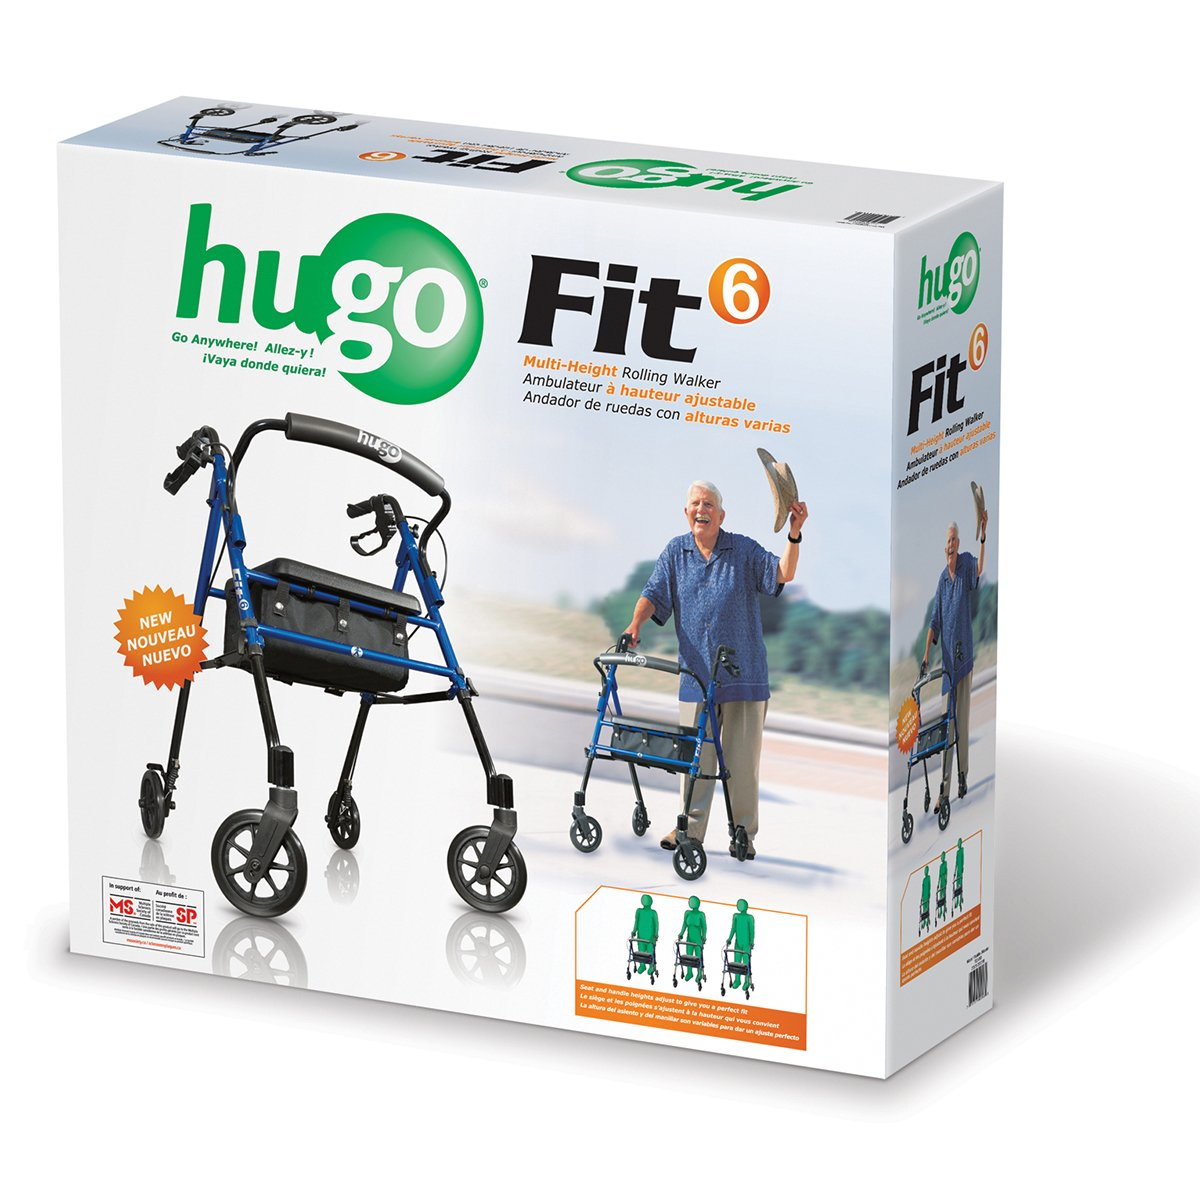 Hugo Mobility 700-913 Fit Rollator Walker with Padded Seat, Backrest and Storage Bag, Pacific Blue